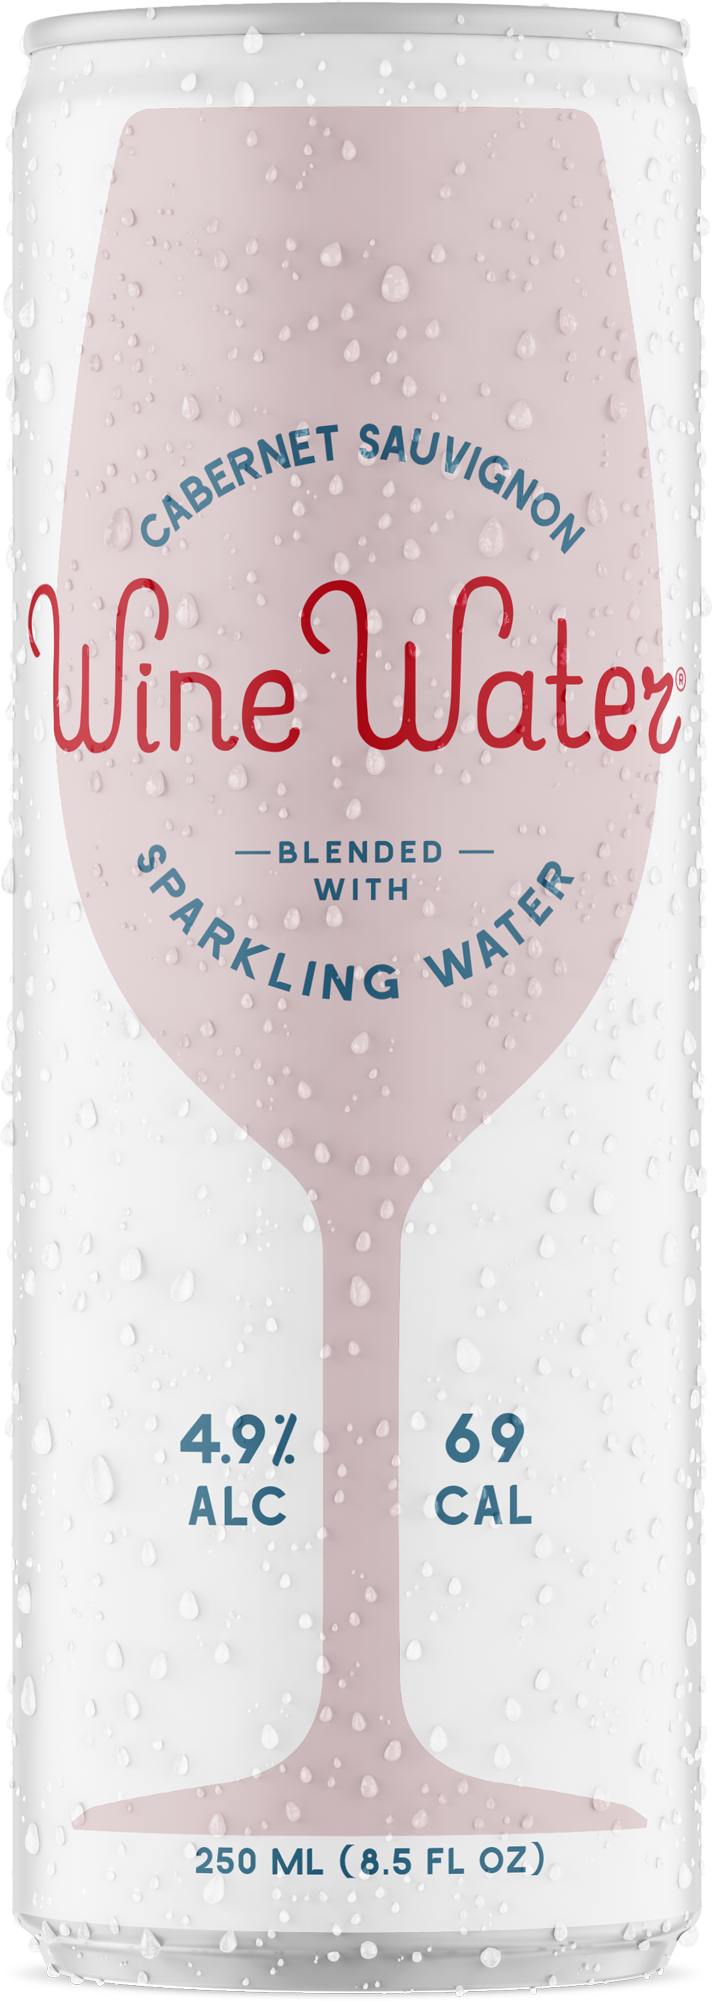 Wine-Water-Cabernet-Sauvignon-Can-Mock-Up-v4-3517-Ruby